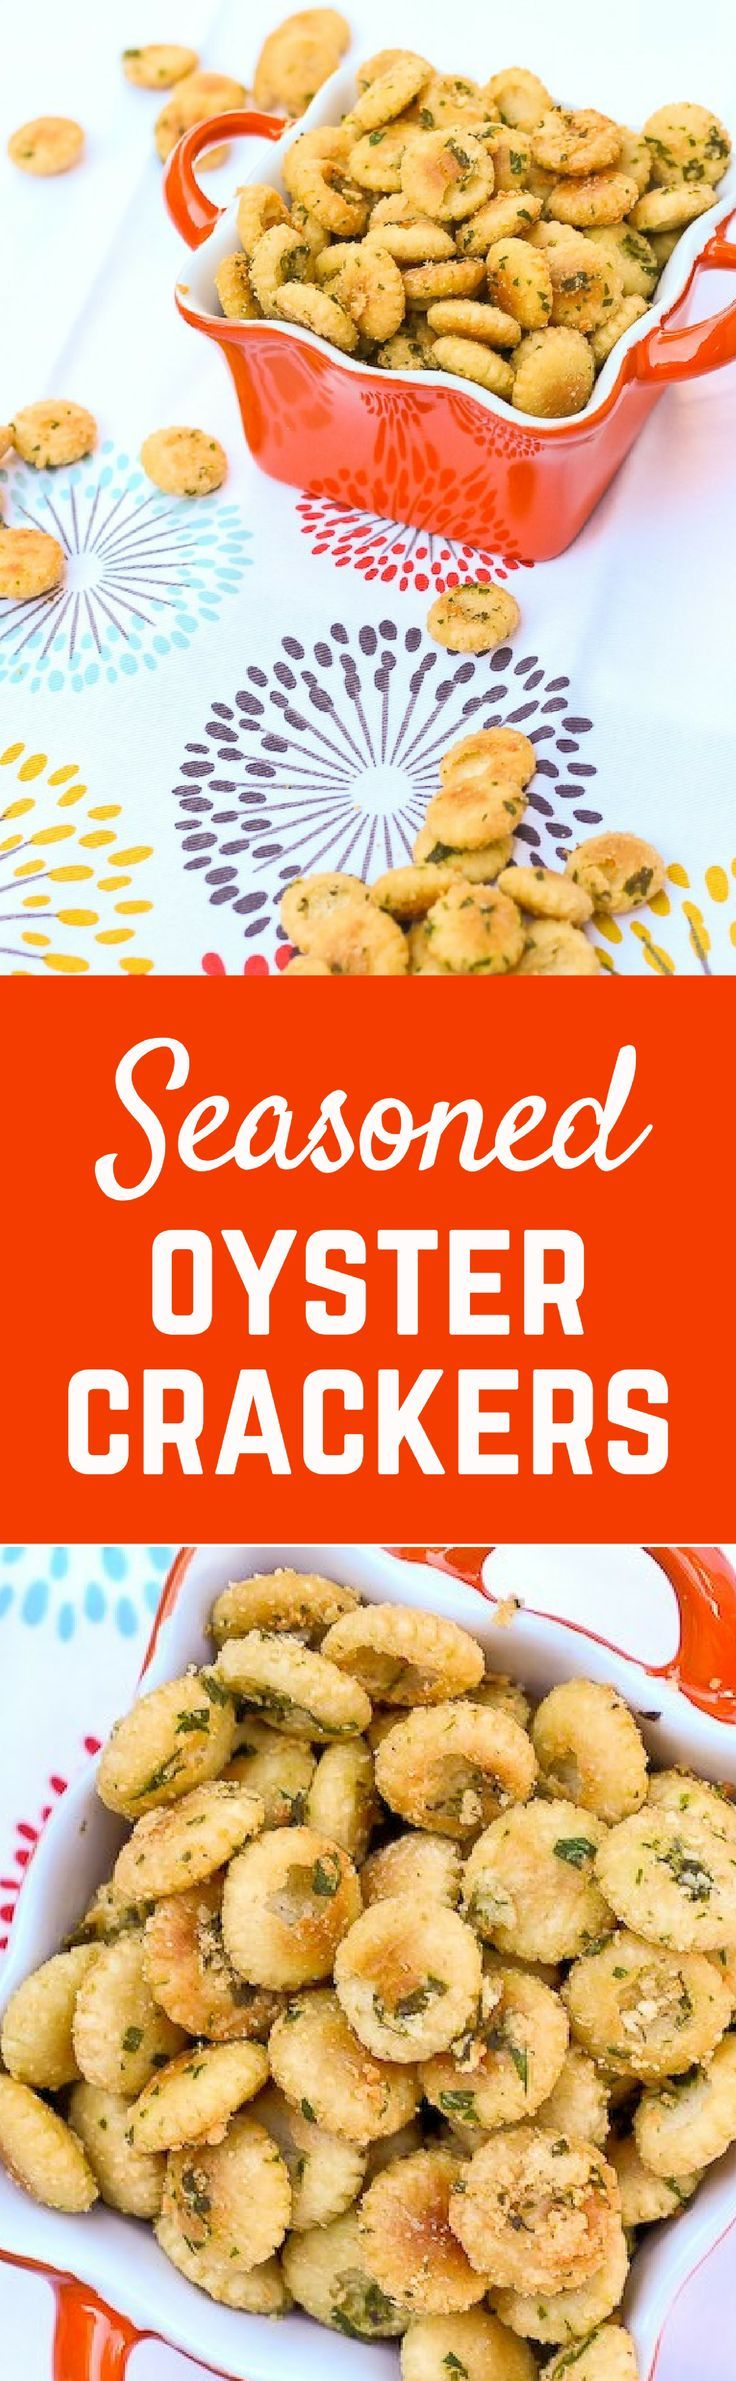 Seasoned Oyster Crackers - get the easy and addictive snack recipe on http://RachelCooks.com